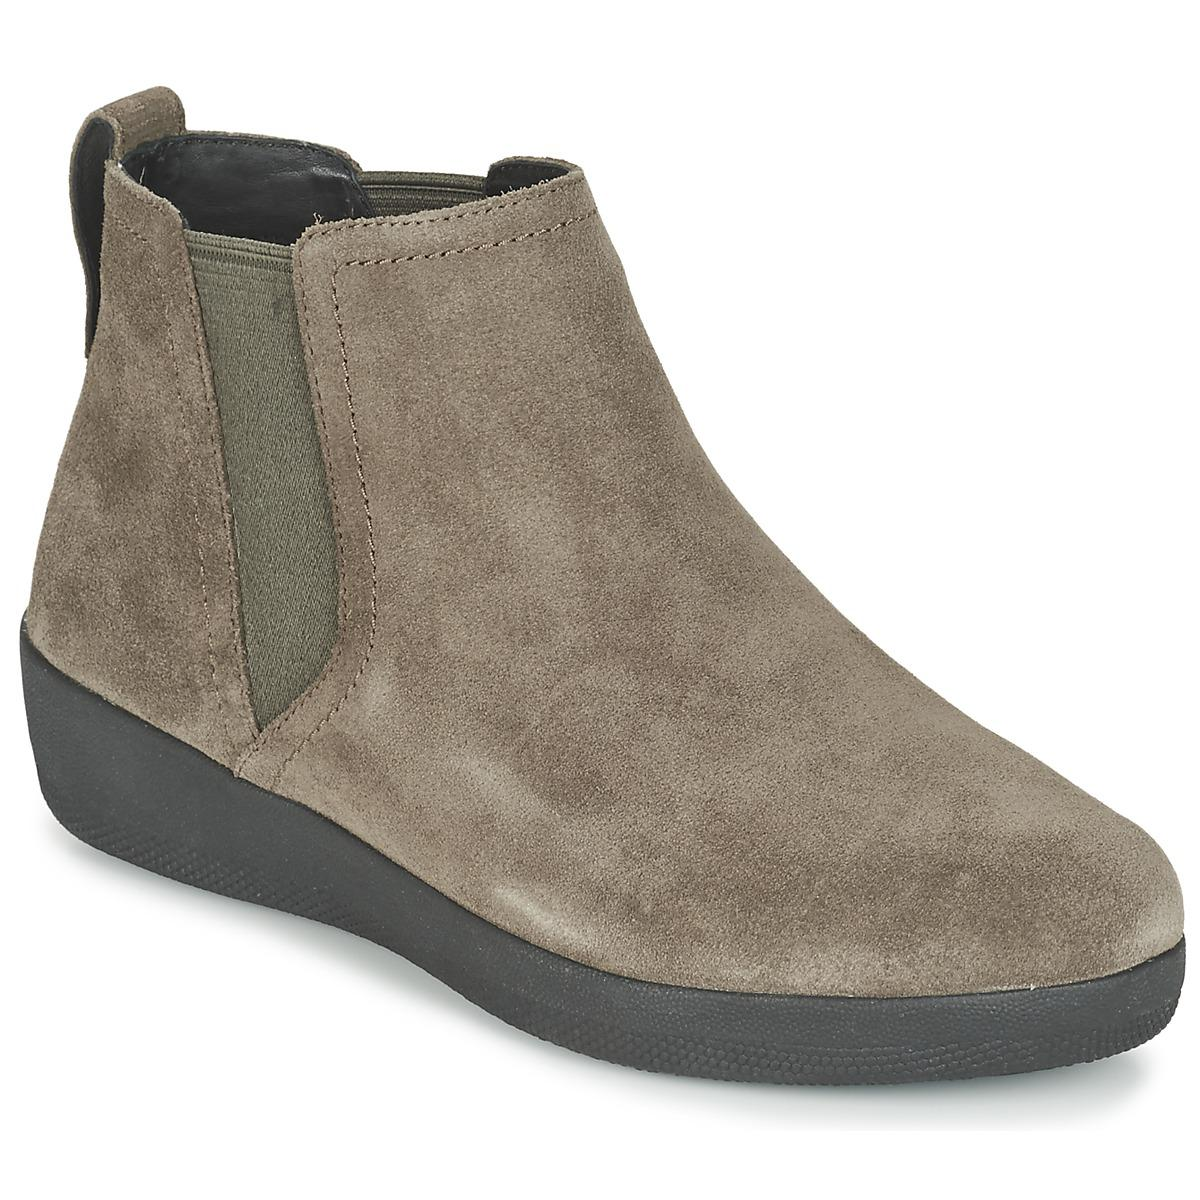 clearance cheap price FitFlop Super Chelsea Boot Suede clearance Cheapest supply for sale Cwm4LWG9